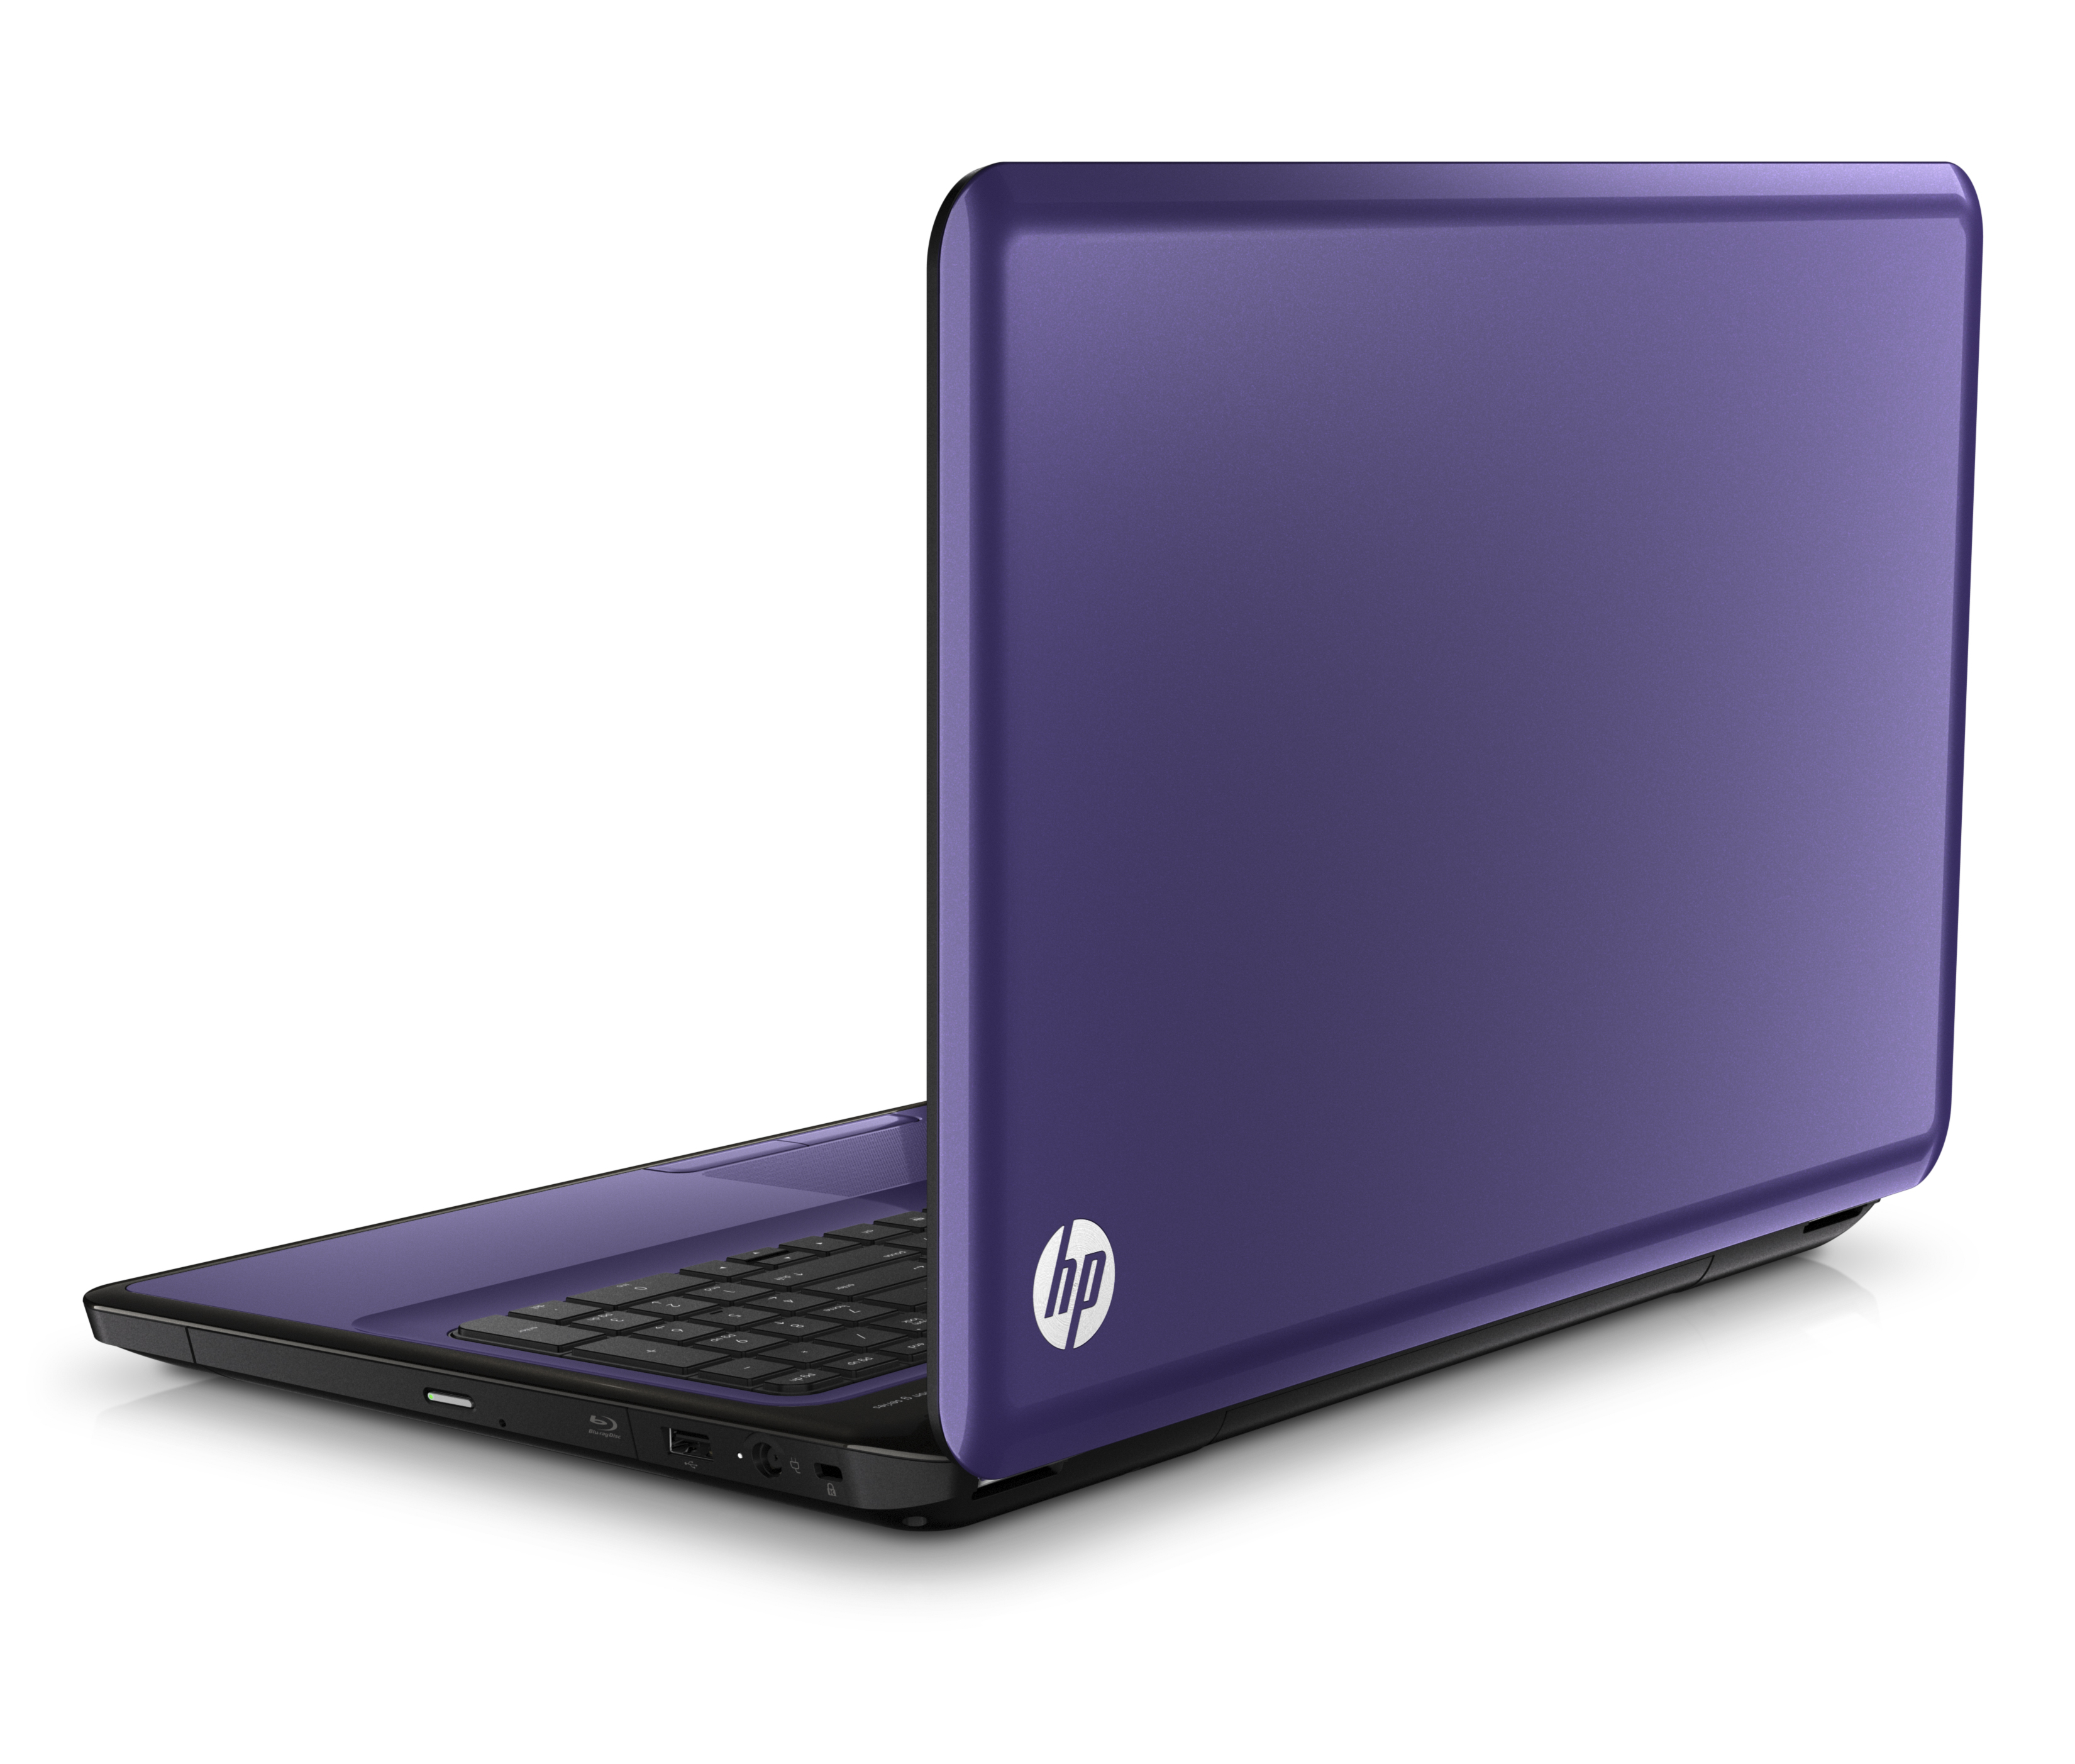 HP Pavilion g7_sweet purple_Image 5